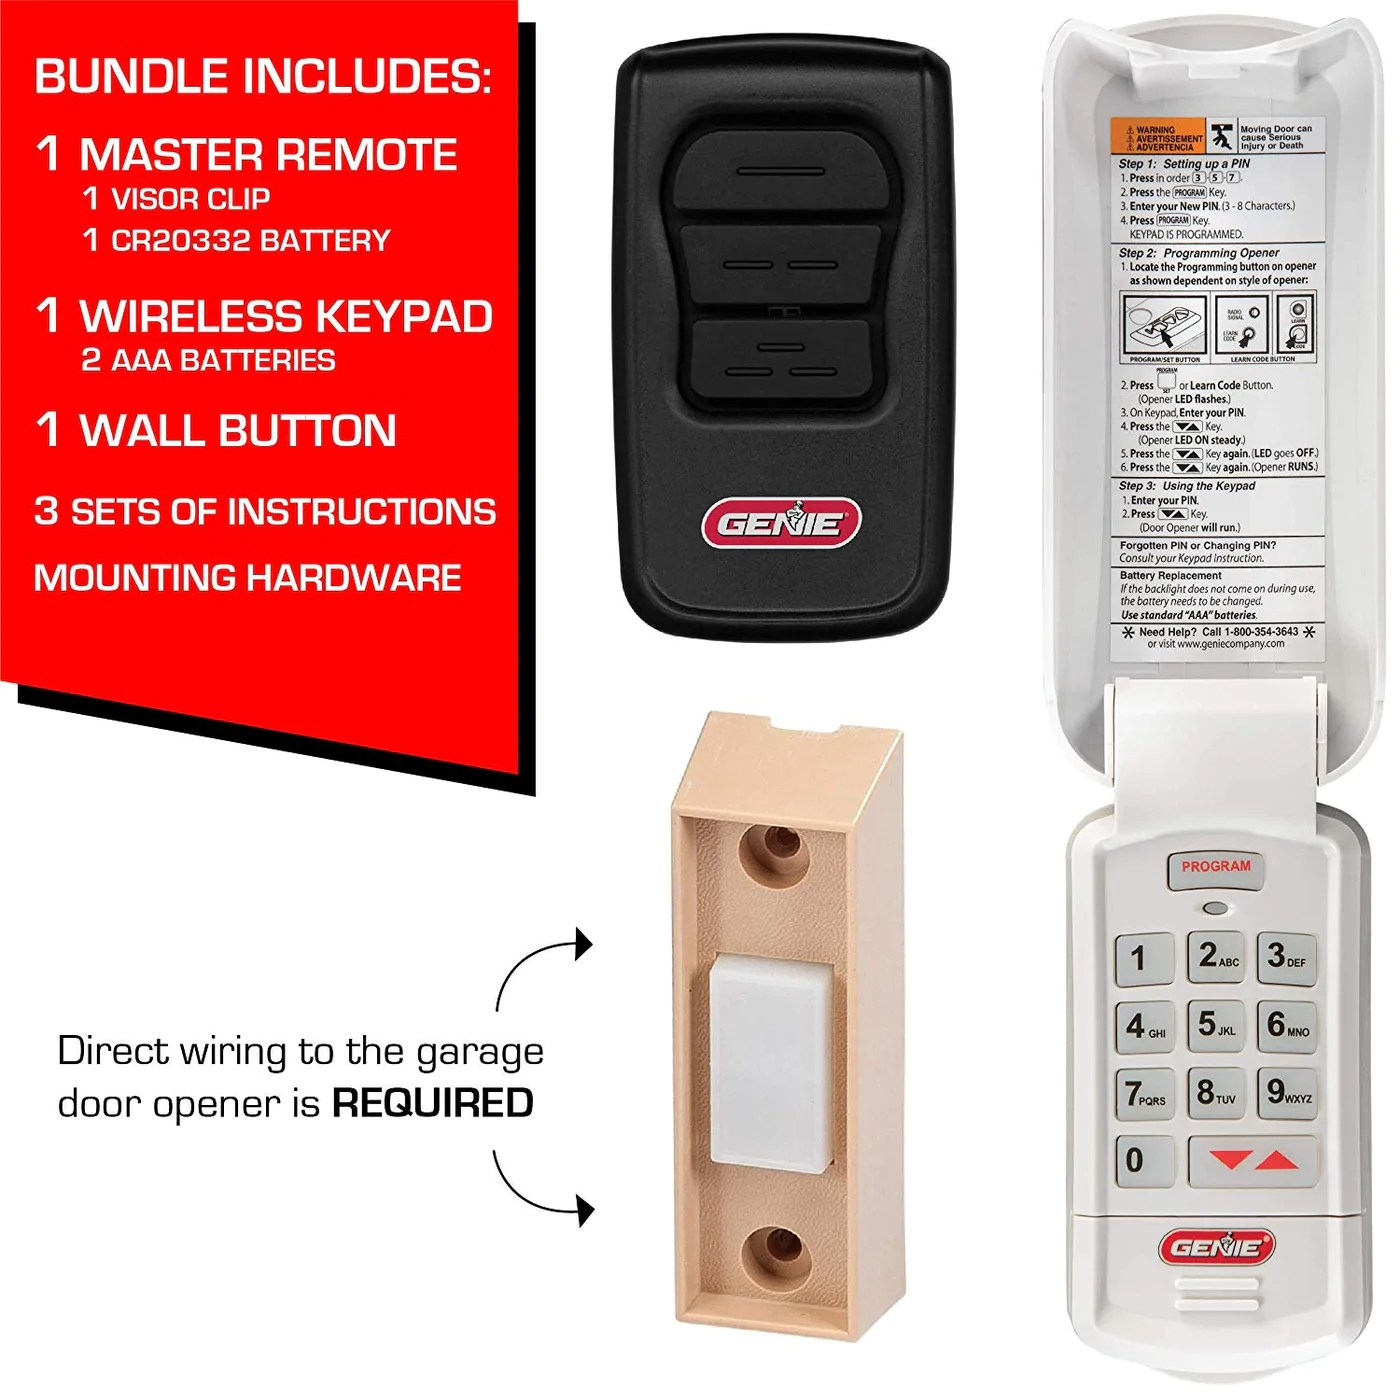 hight resolution of  genies accessories bundle for garage door openers come with diy detailed illustrated programming instructions genie s